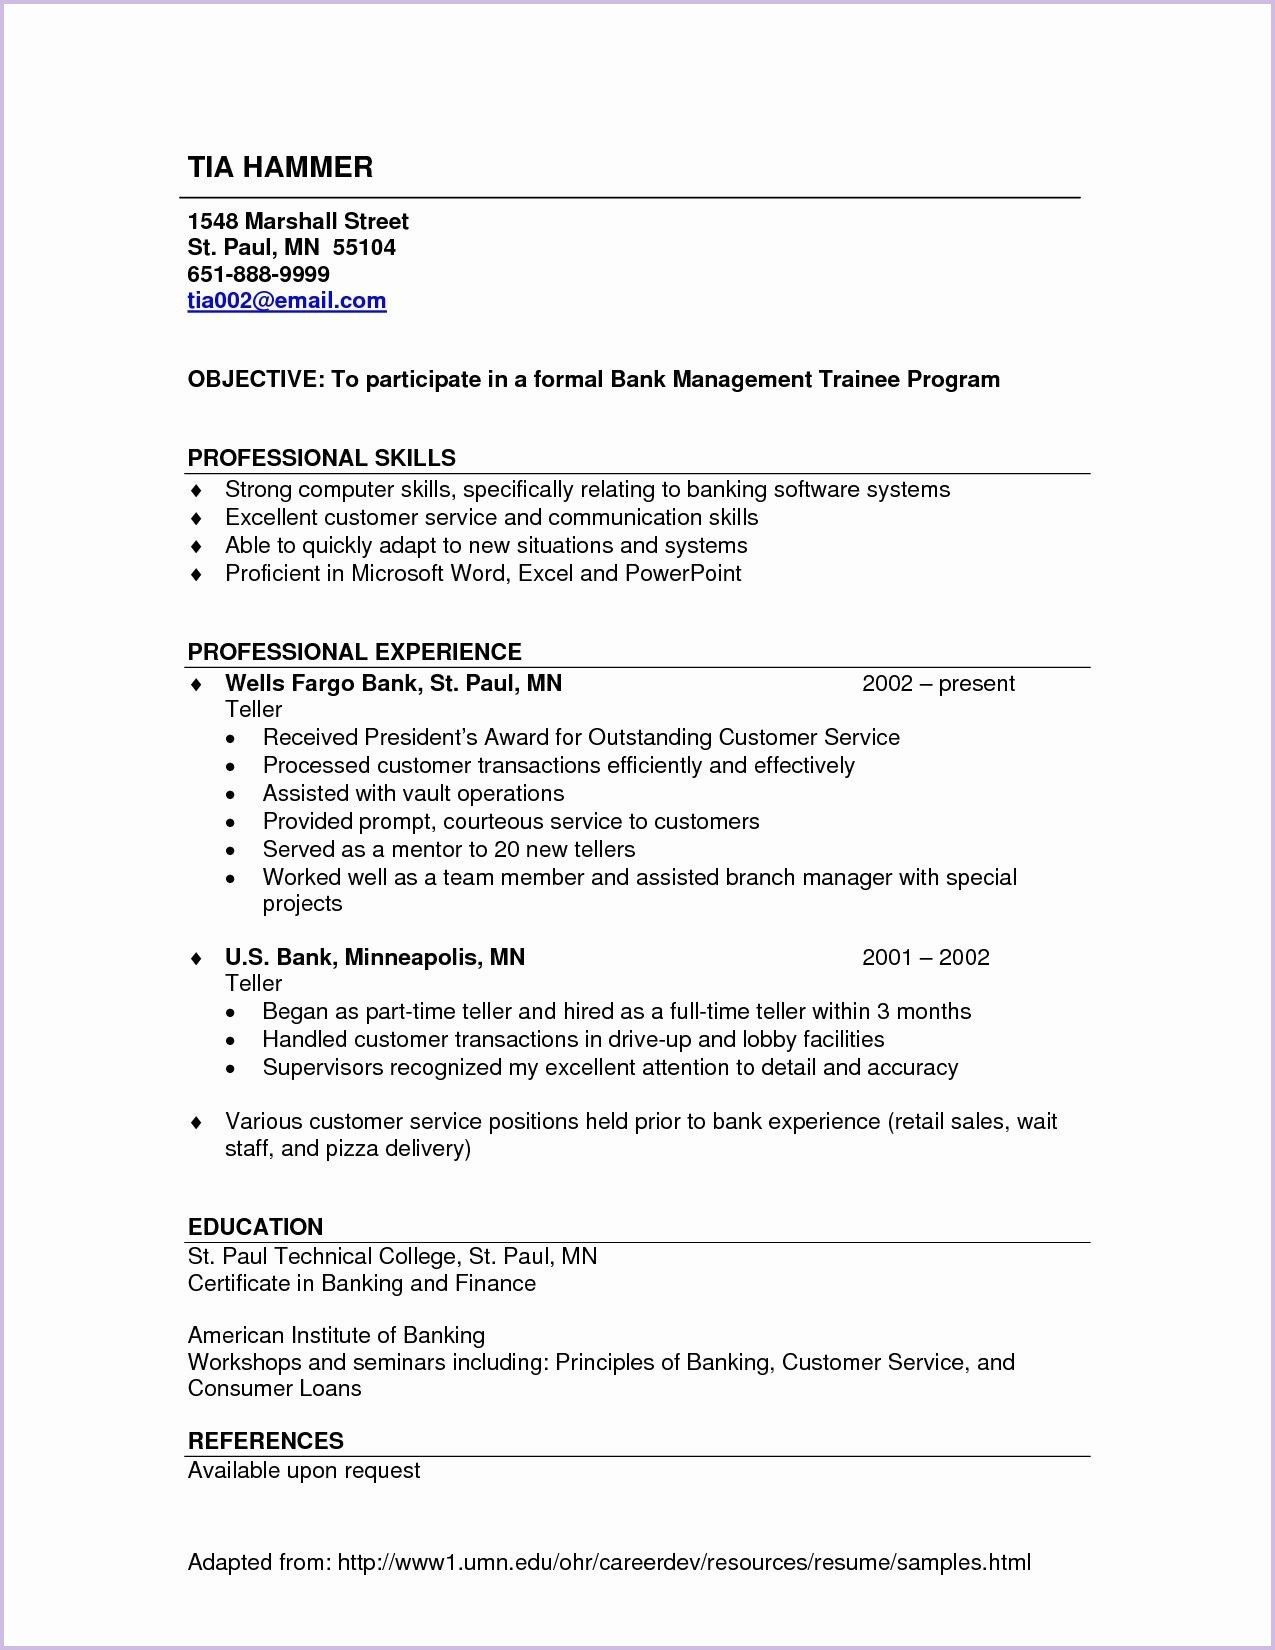 Pin by Bvilas on Incident management resume (With images